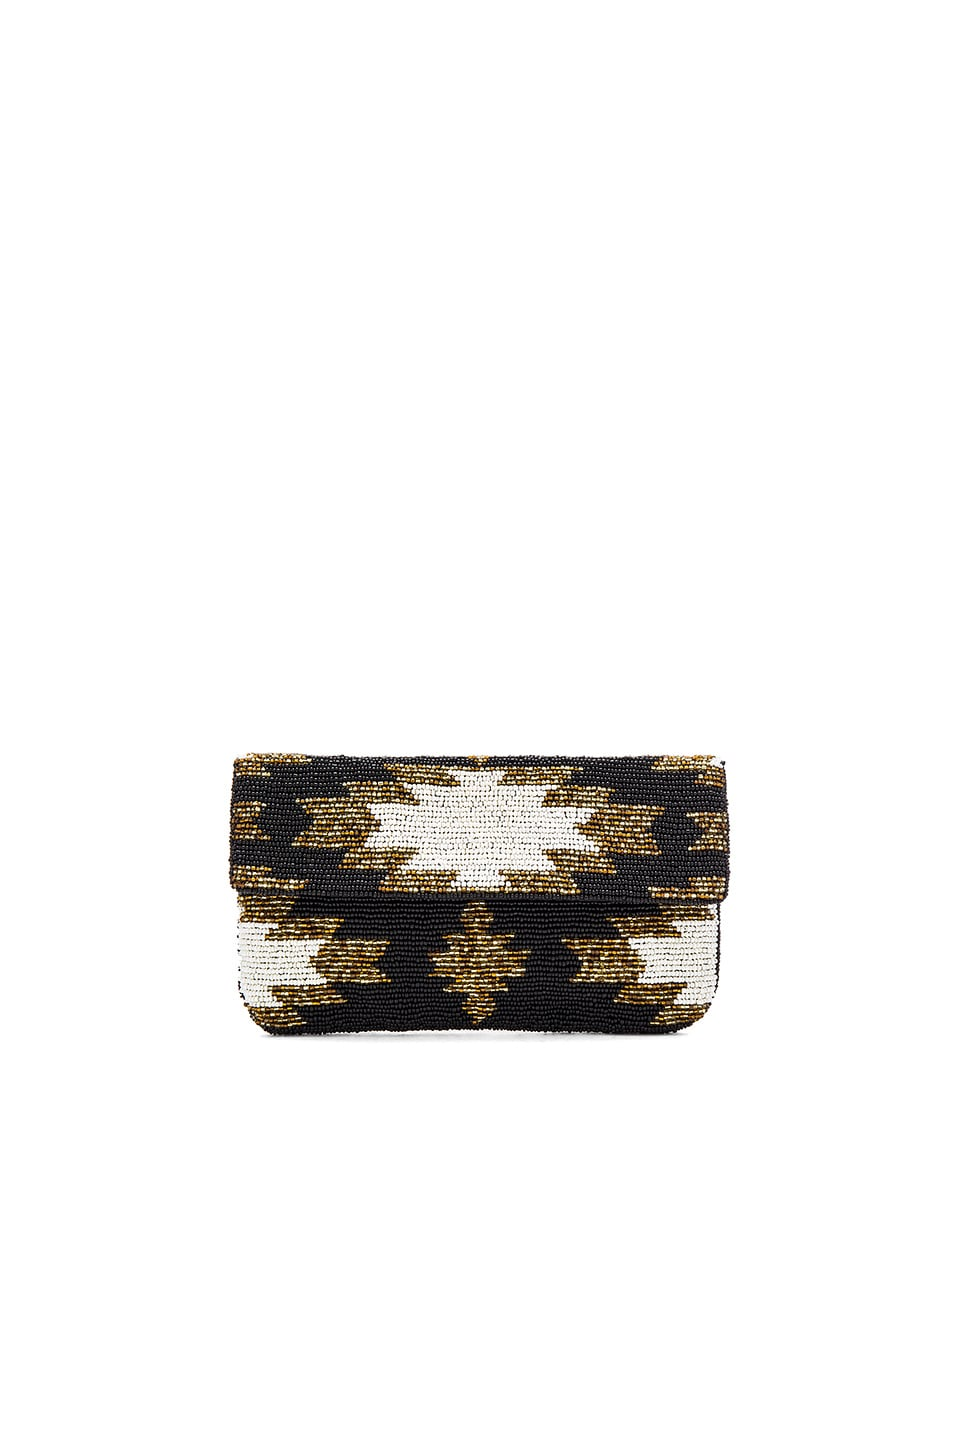 From St Xavier Ayla Clutch in Black & Ivory